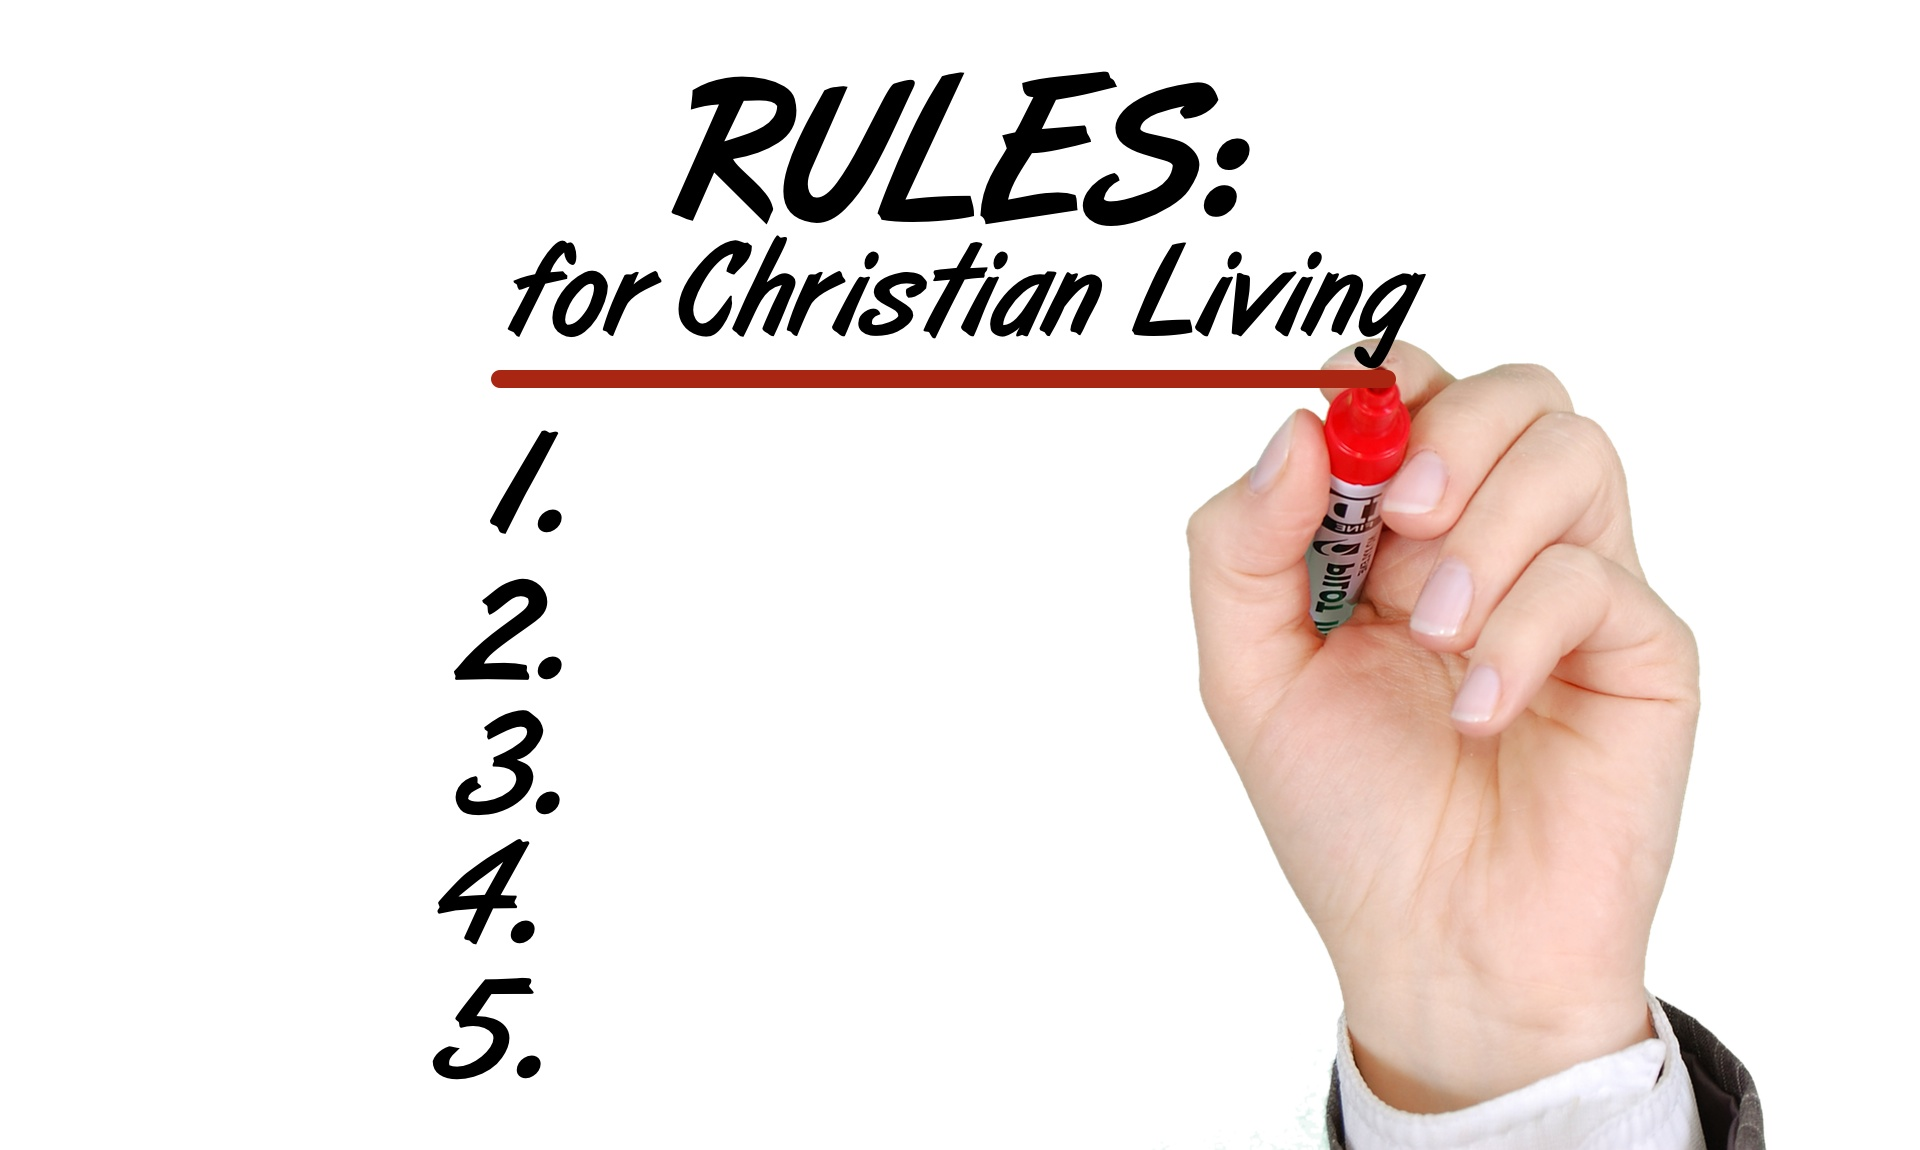 Christianity is Not About Rule-Keeping